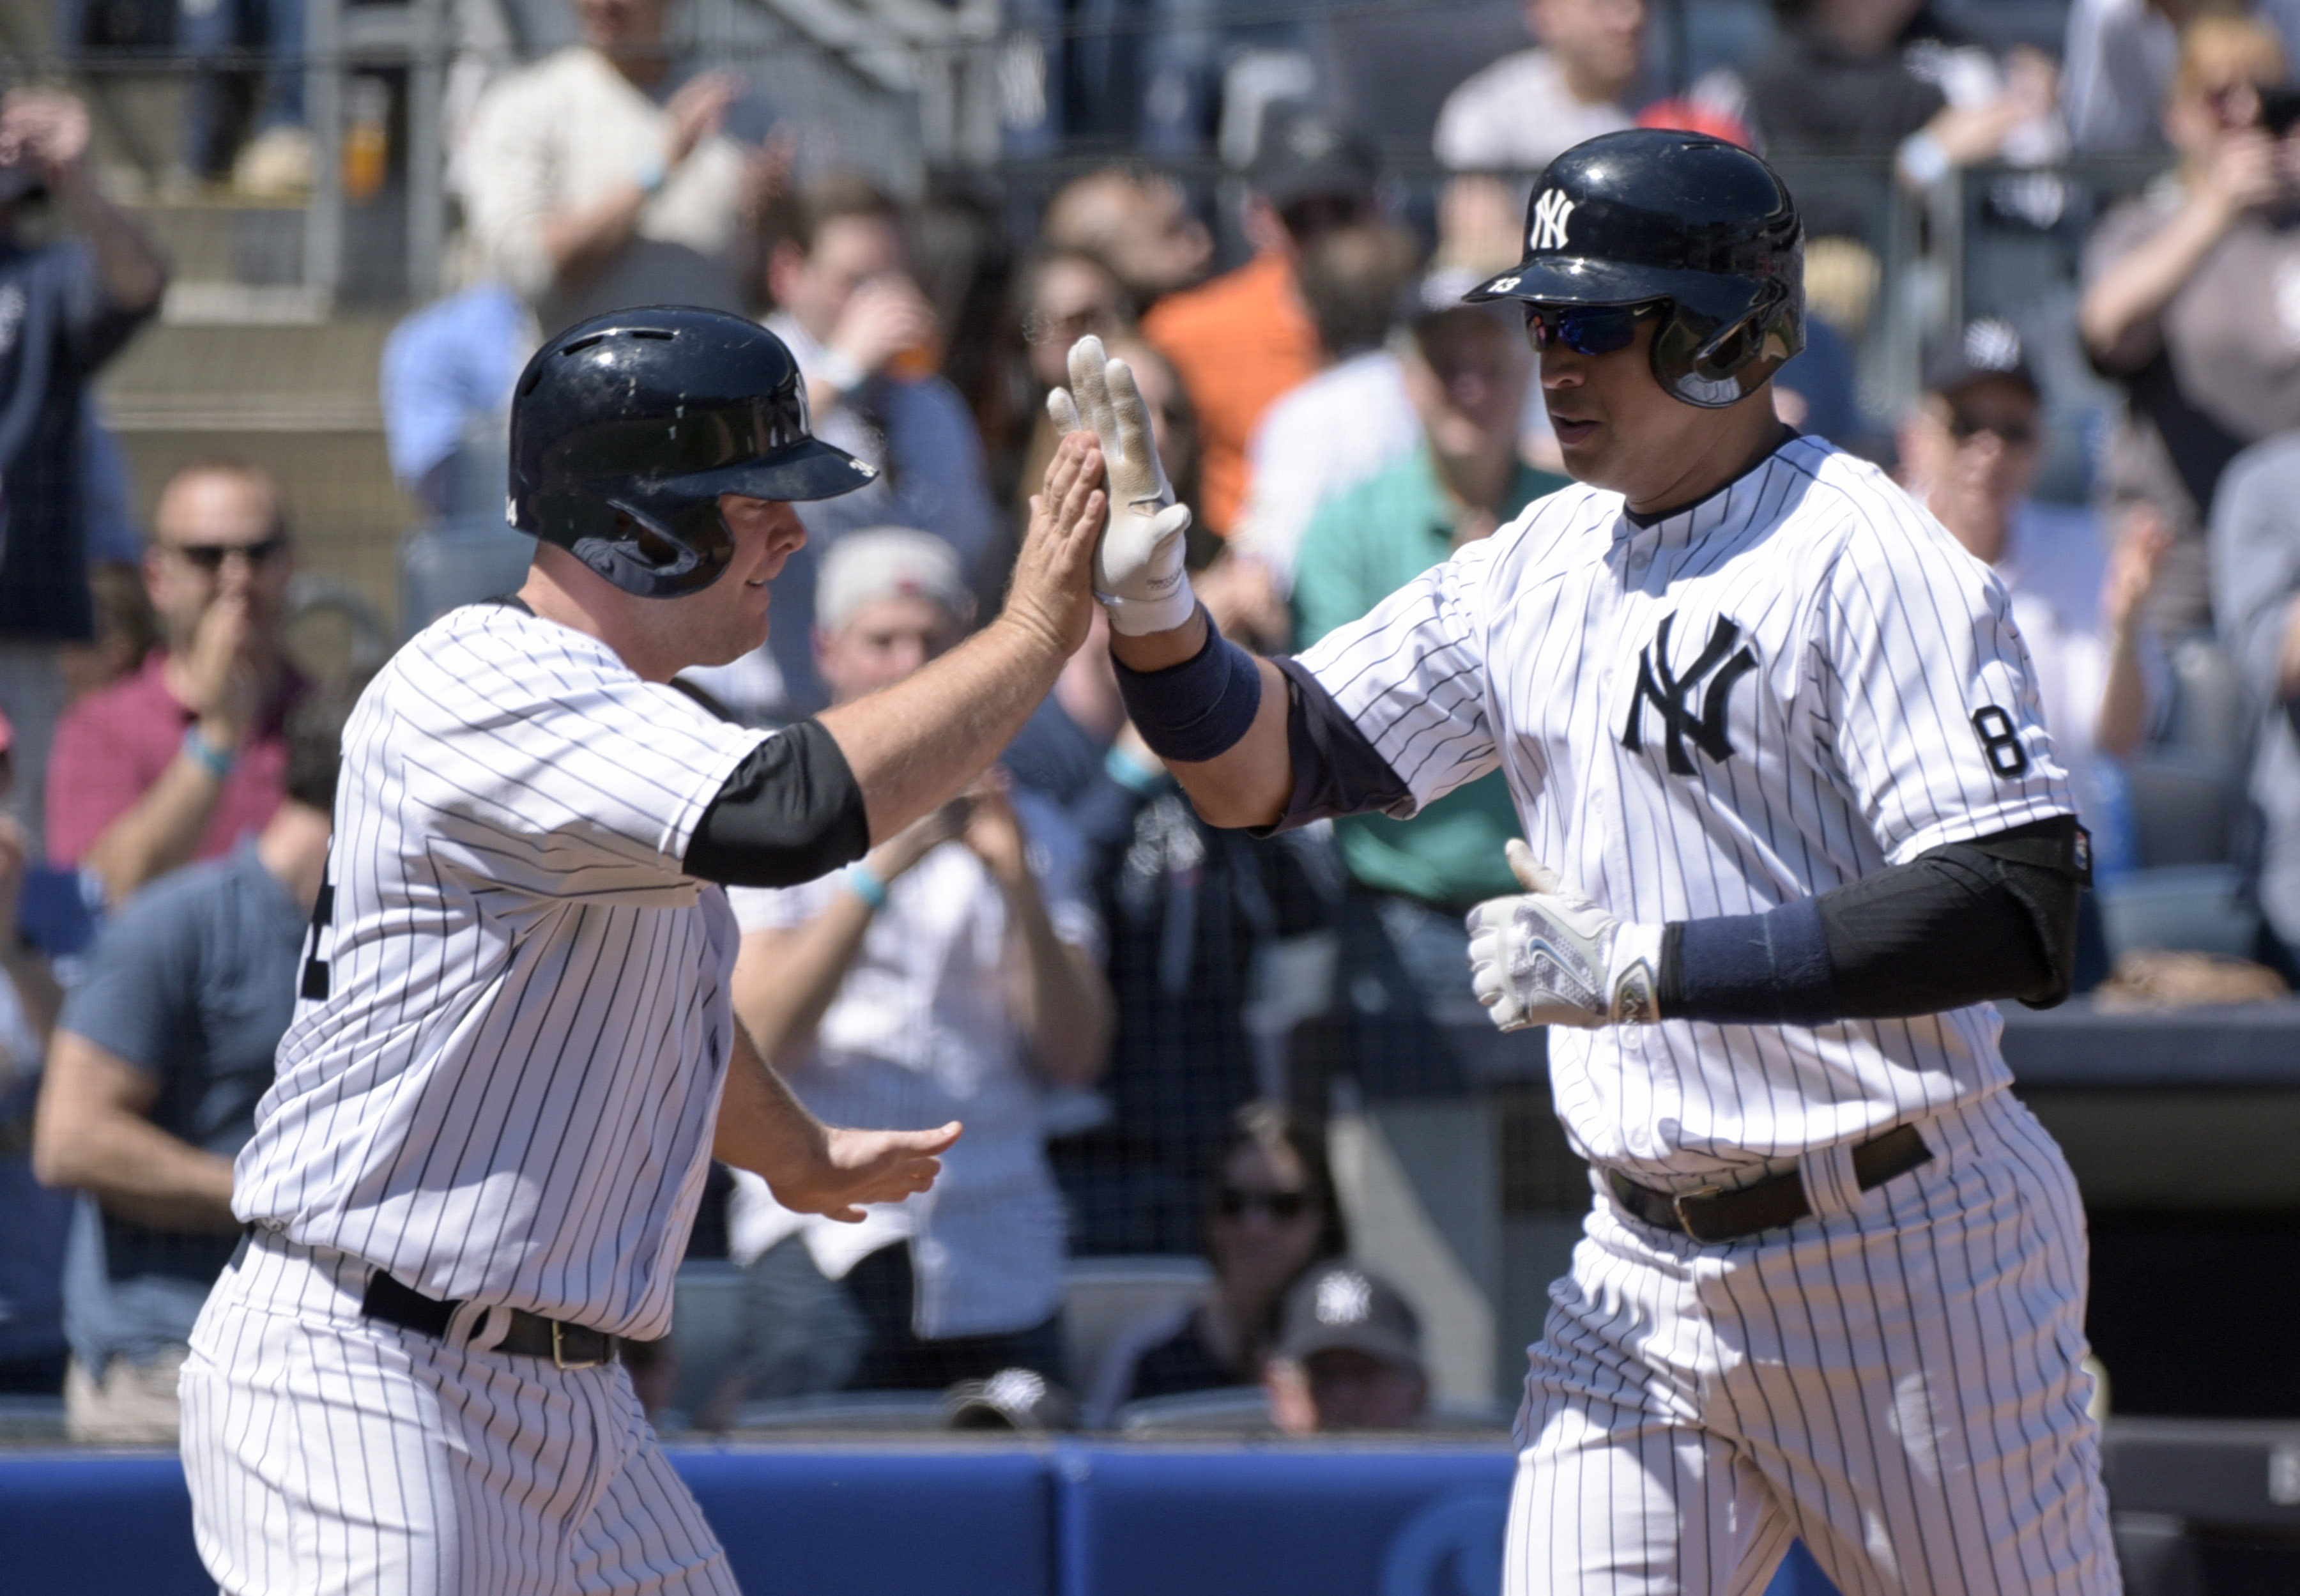 New York Yankees' Alex Rodriguez, right, celebrates with Brian McCann after hitting a two-run home run, also scoring McCann, during the second inning of a baseball game against the Seattle Mariners, Sunday, April 17, 2016, at Yankee Stadium in New York. (